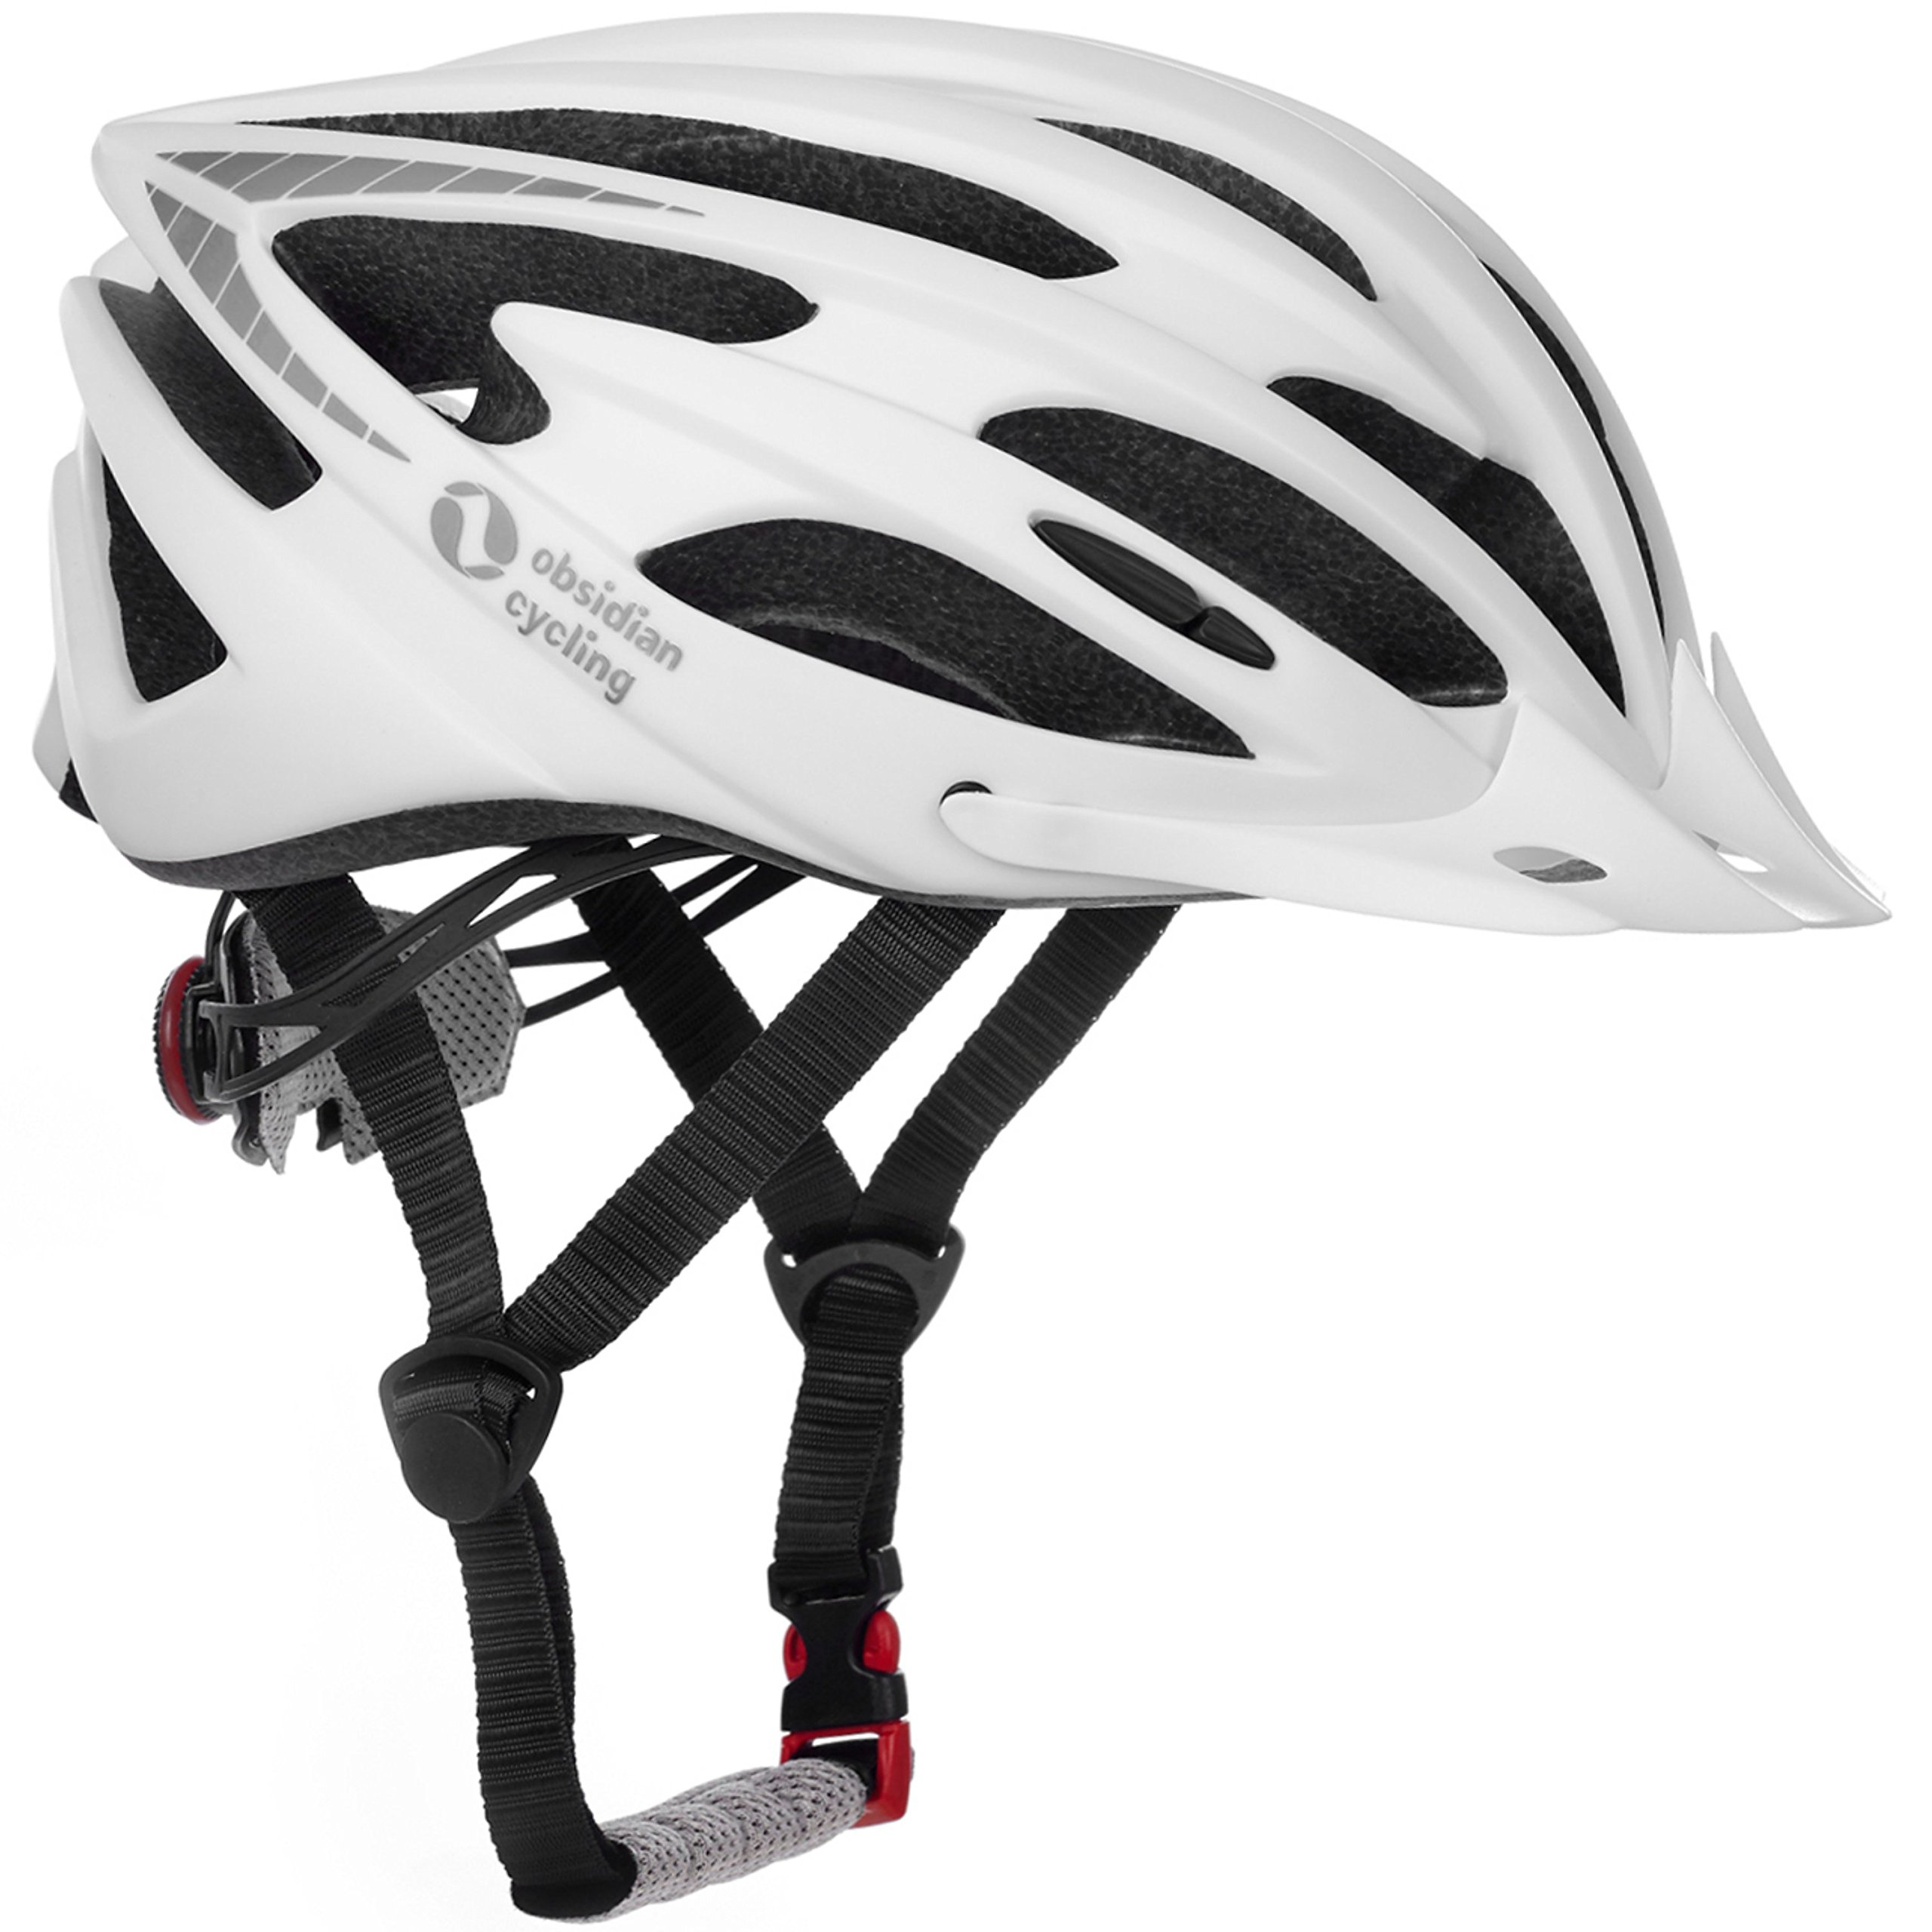 Airflow bicicleta casco con certificado de seguridad – Especialmente para motoristas. & Mountain Biking – de gran calidad, cómodo, ligero y transpirable – adecuado para hombres, mujeres & adolescente, Airflow, blanco mate: